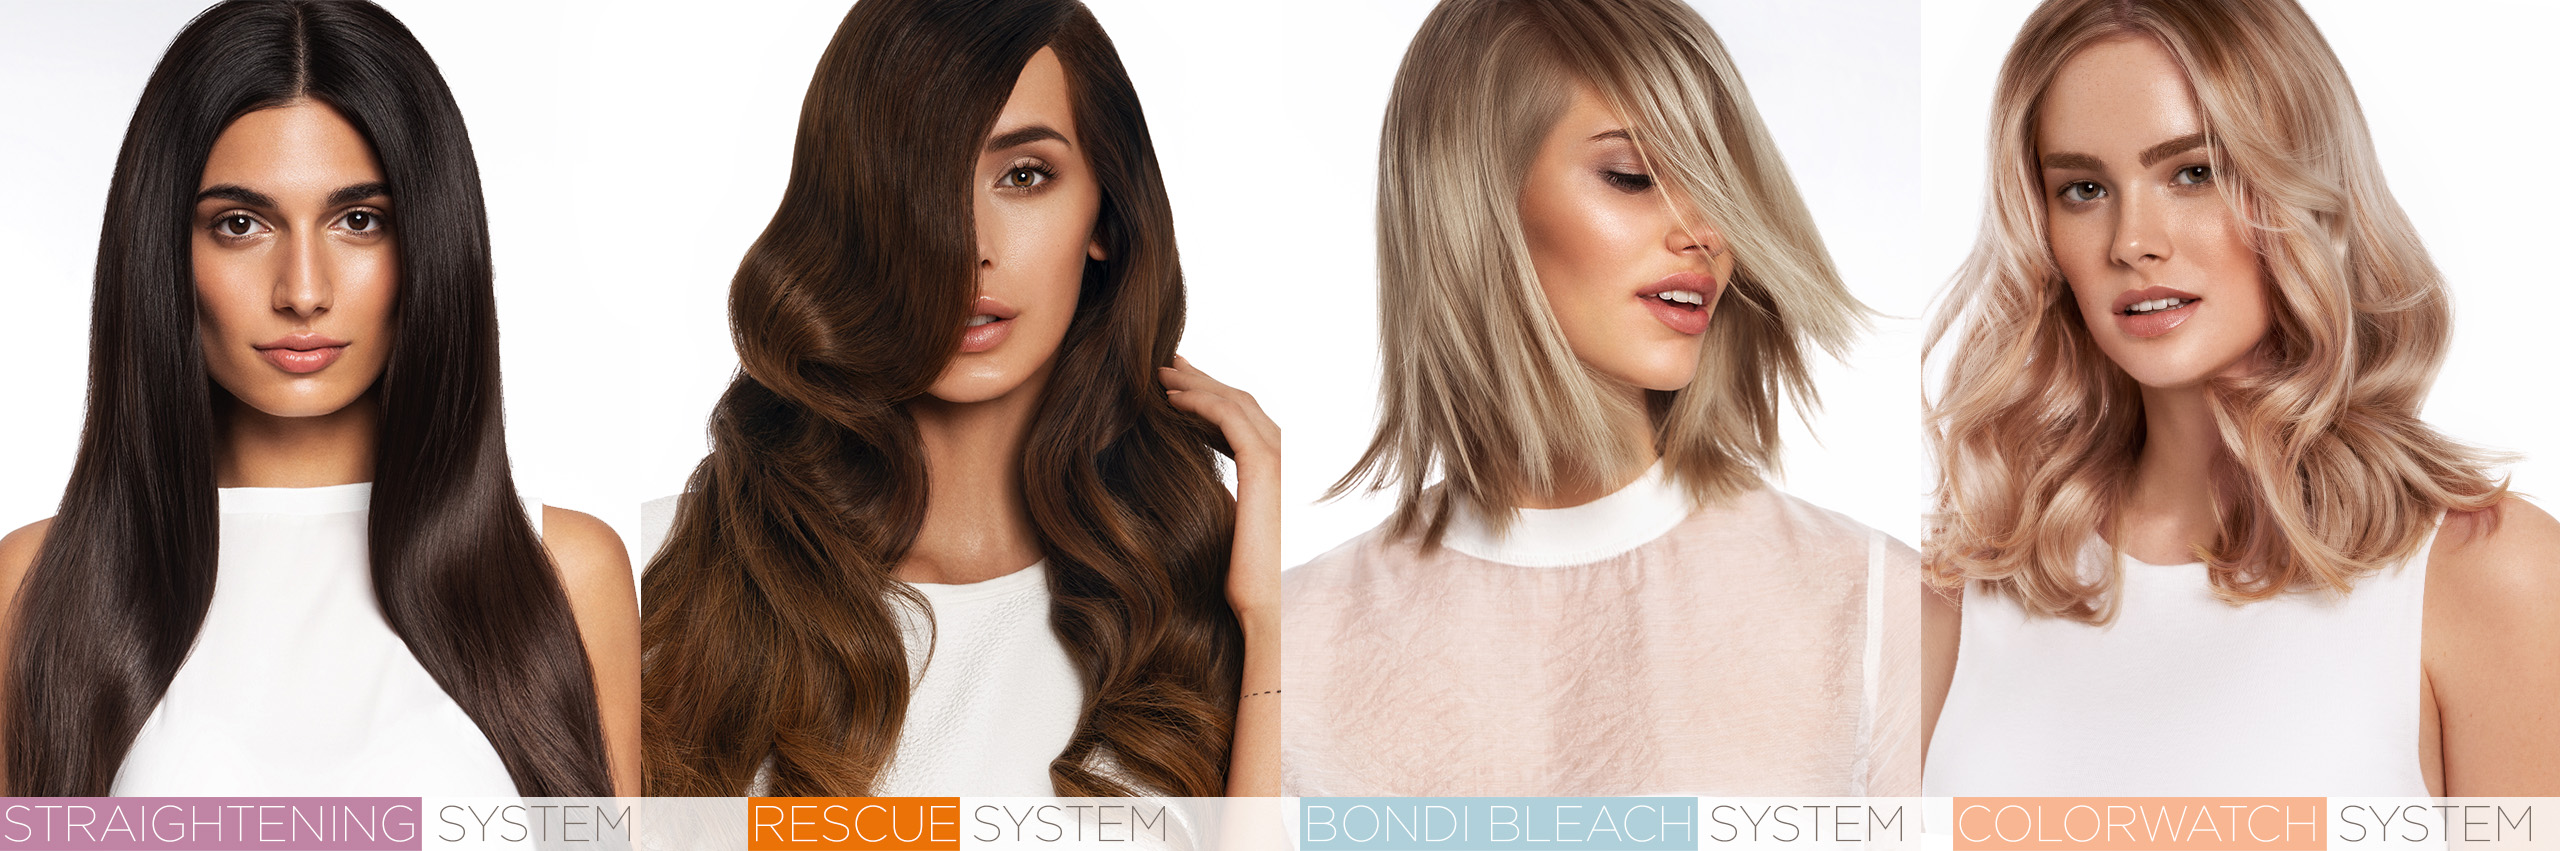 NEWSHA, salon systems, haircare, treatment, professional, Straightening, Bondi Bleach, Colorwatch, Rescue System, hair, hairdresser, salon exclusive